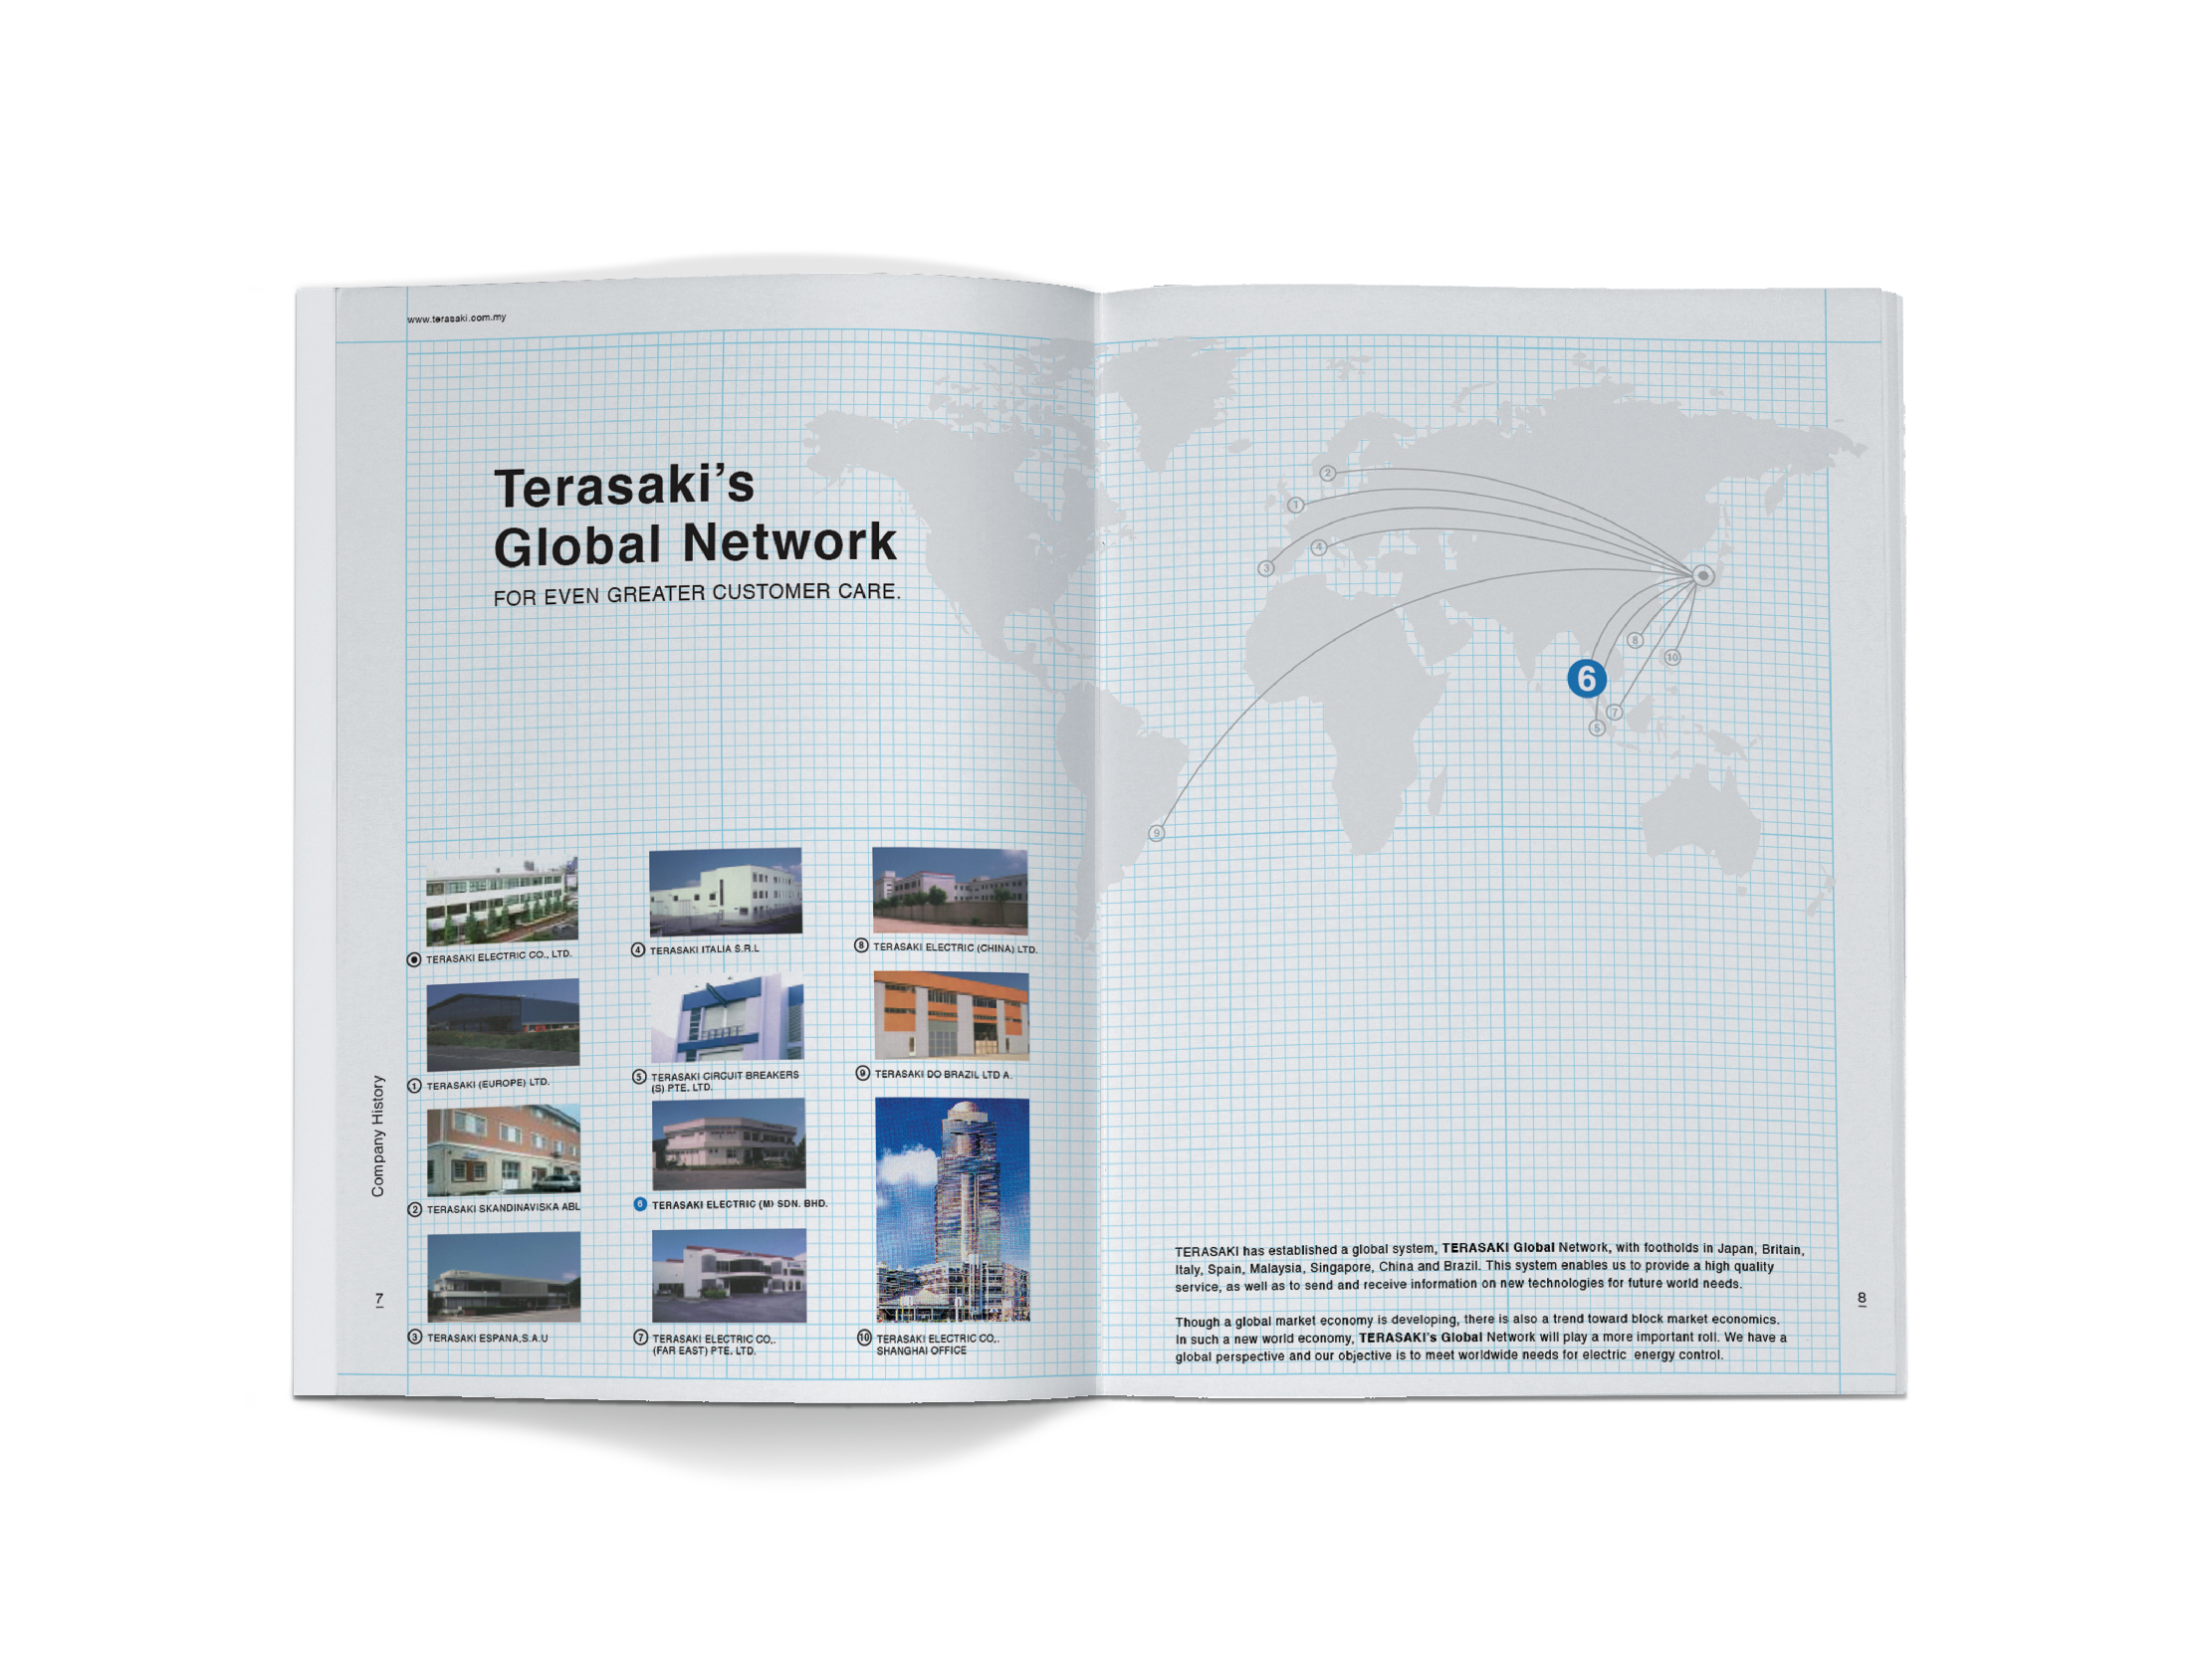 Terasaki Electric company profile inner pages clean layout design of the company's global network with image of offices in different countries against a blue grid background